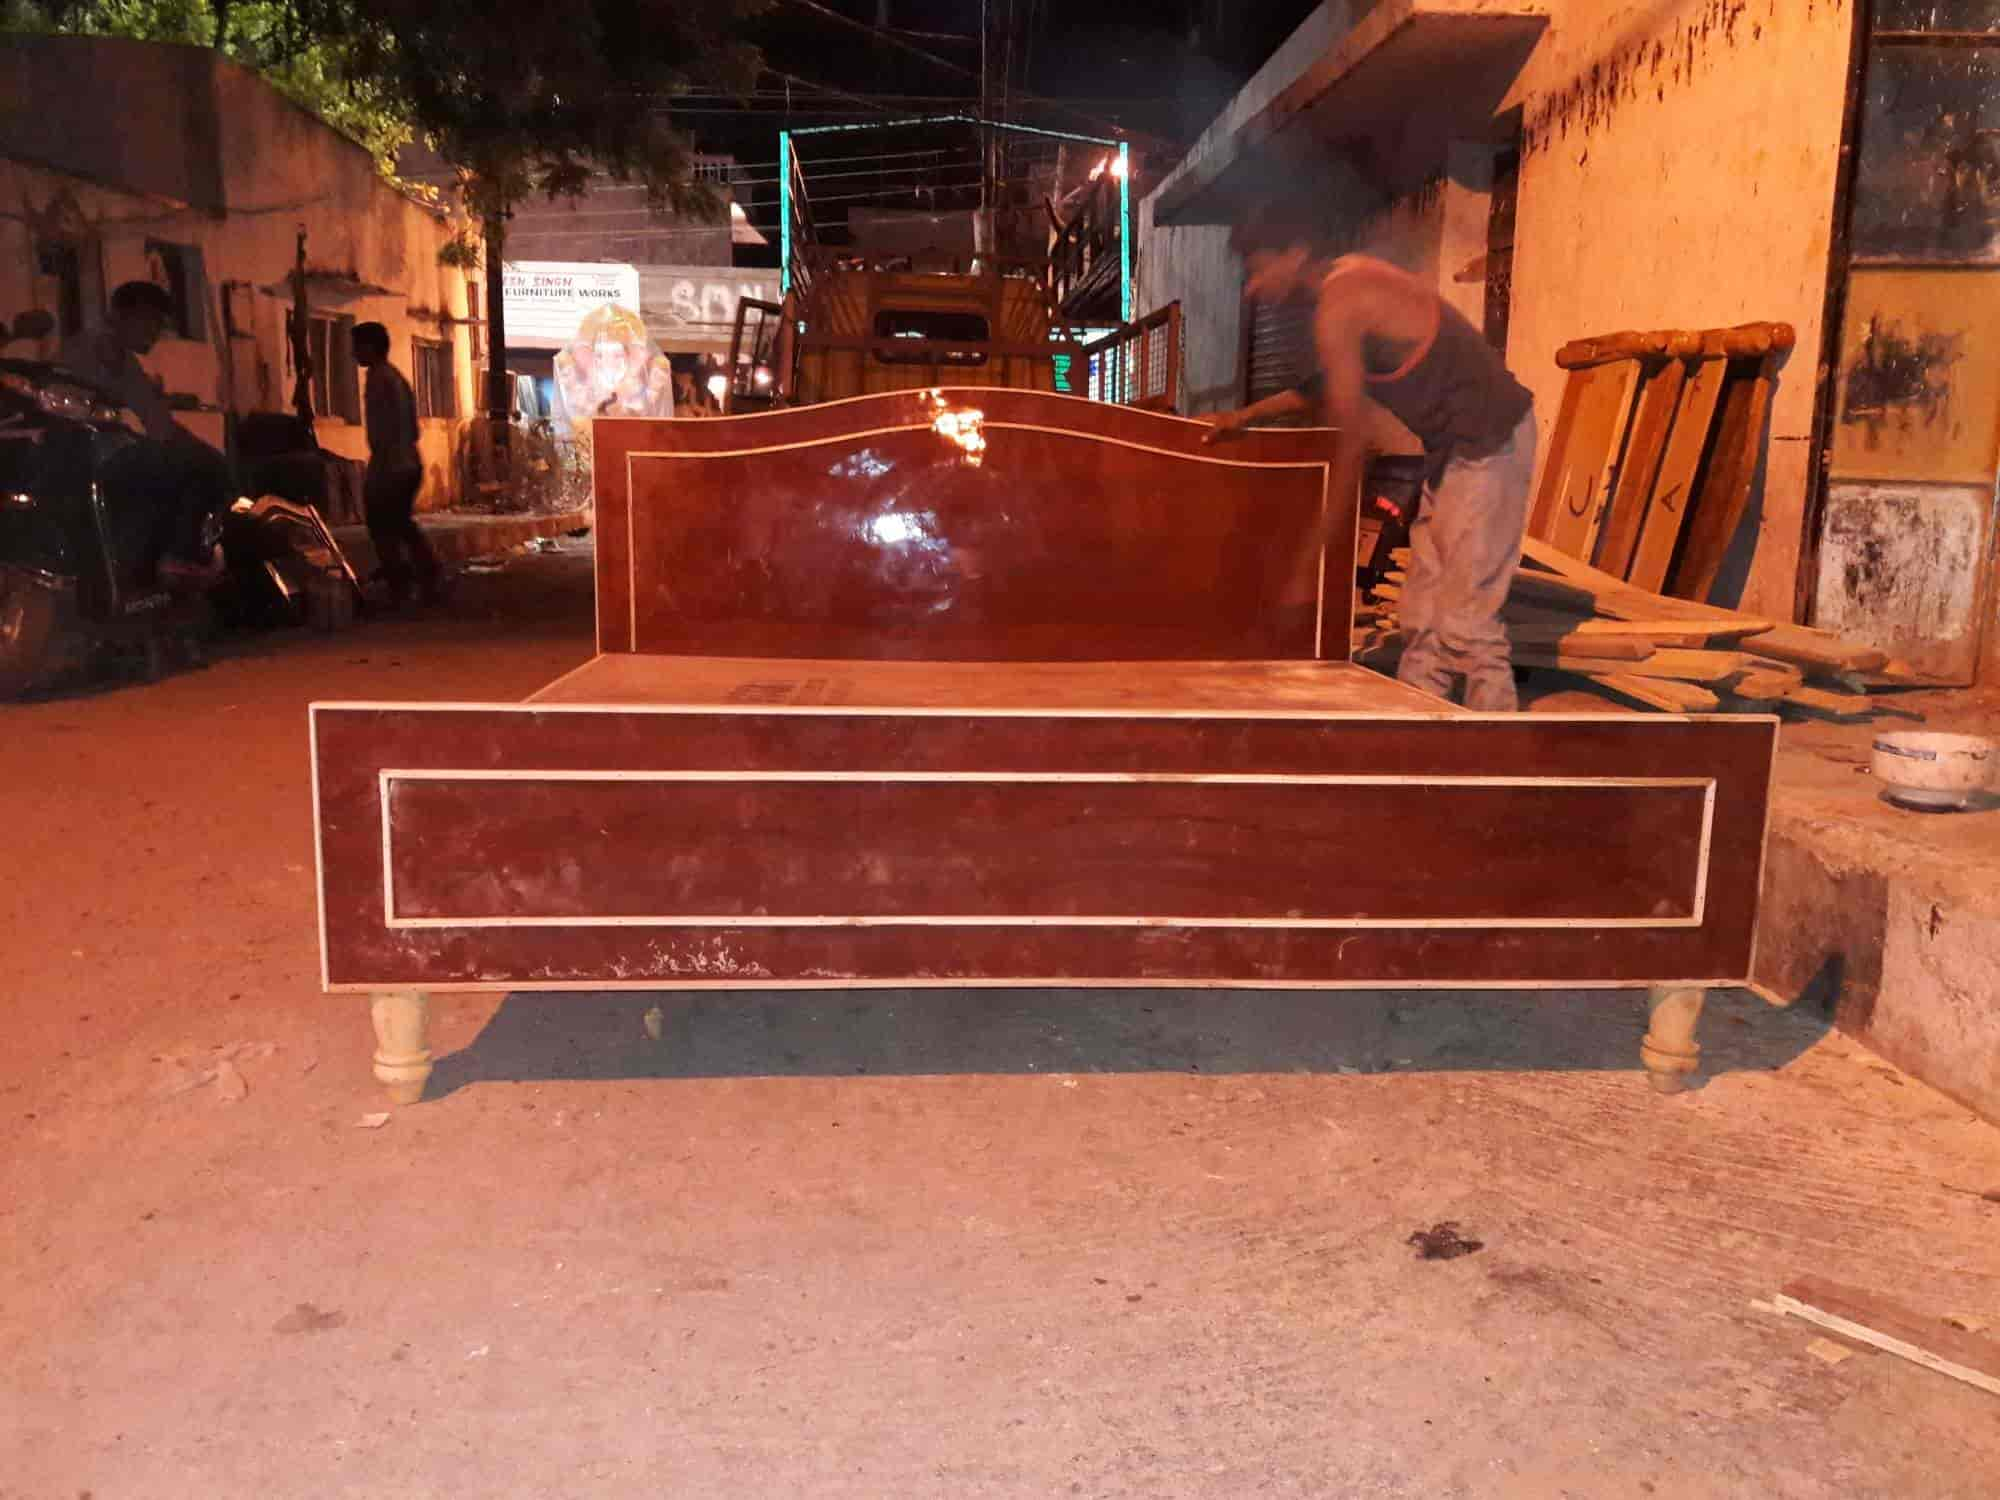 Beau A To Z Furniture Works, Asif Nagar   Furniture Manufacturers In Hyderabad    Justdial